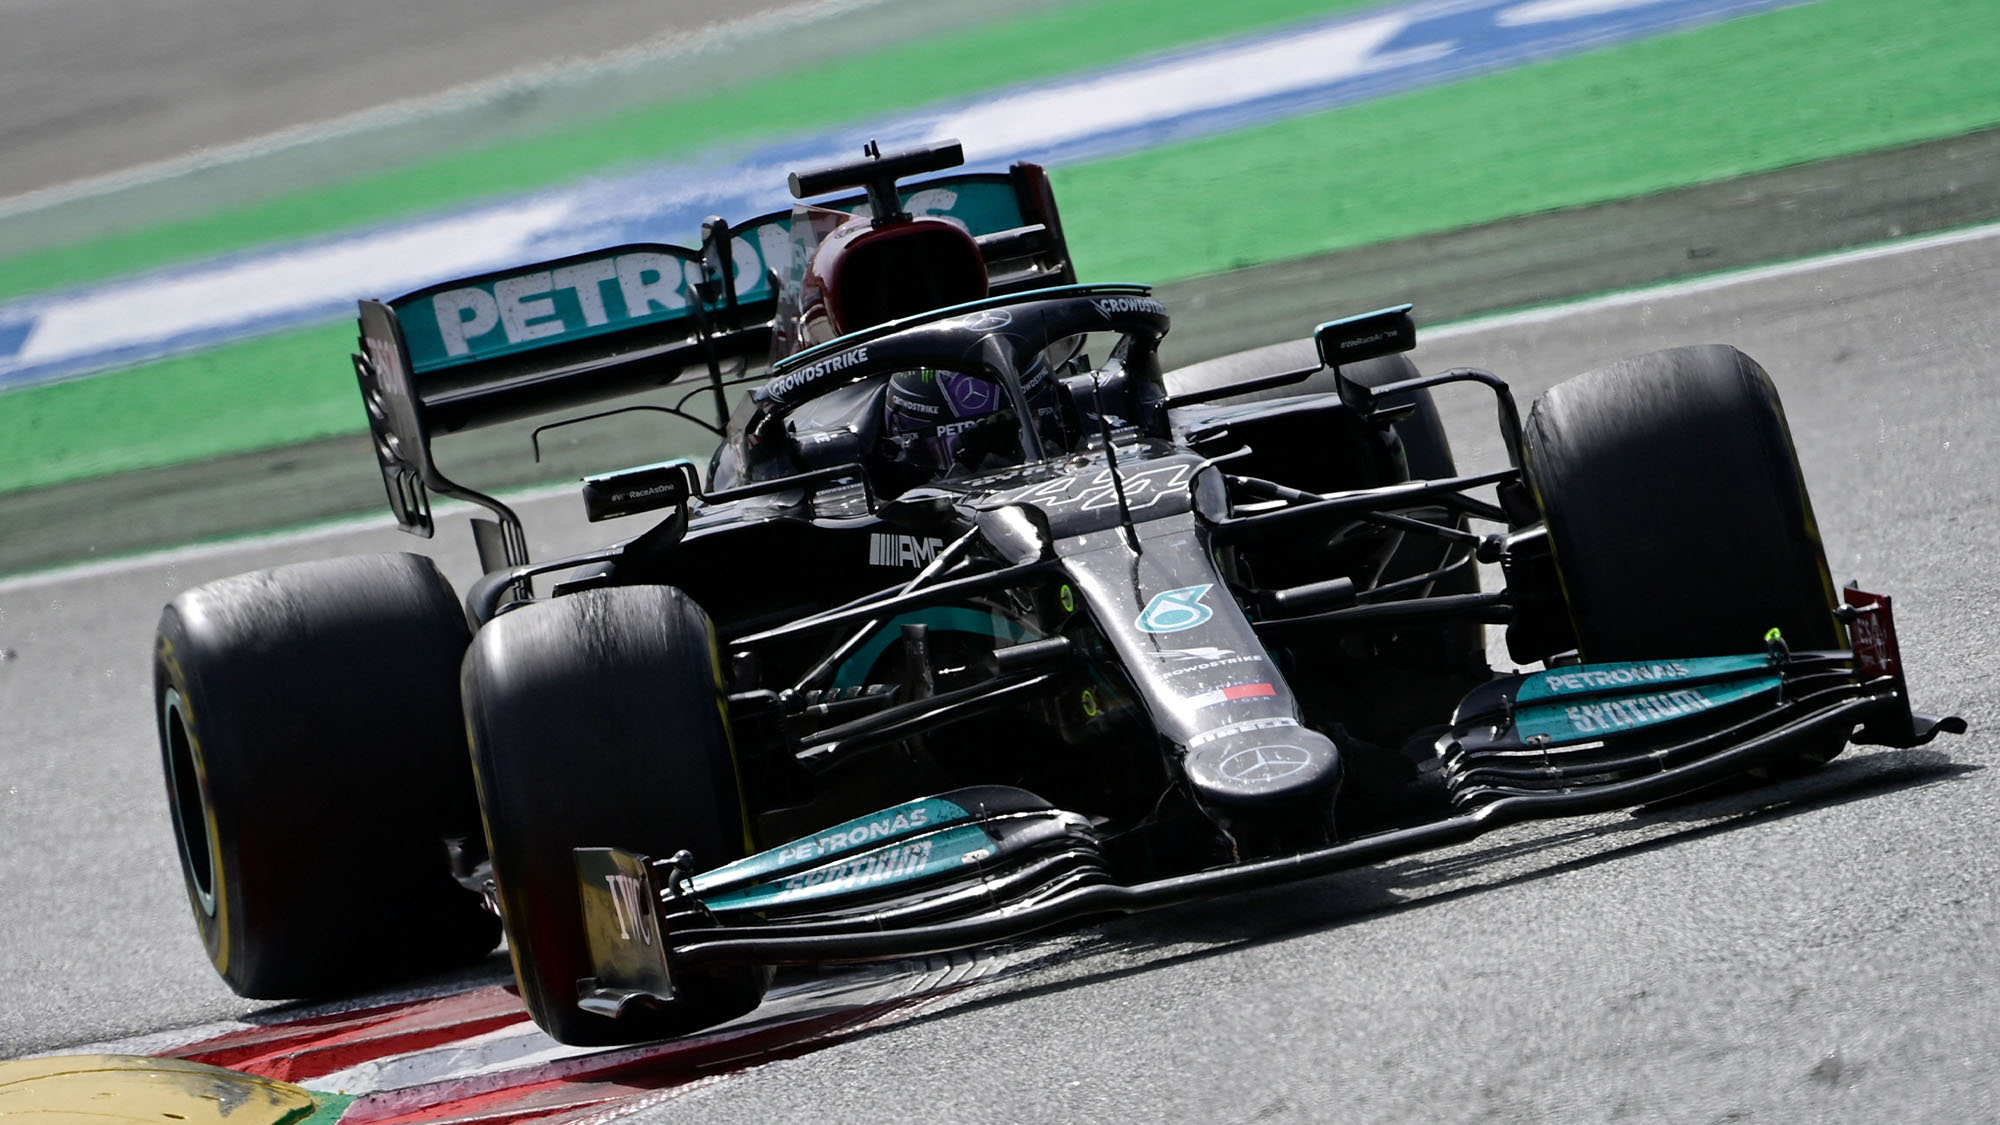 Hamilton hunts down Verstappen for victory: 2021 Spanish Grand Prix lap by lap report